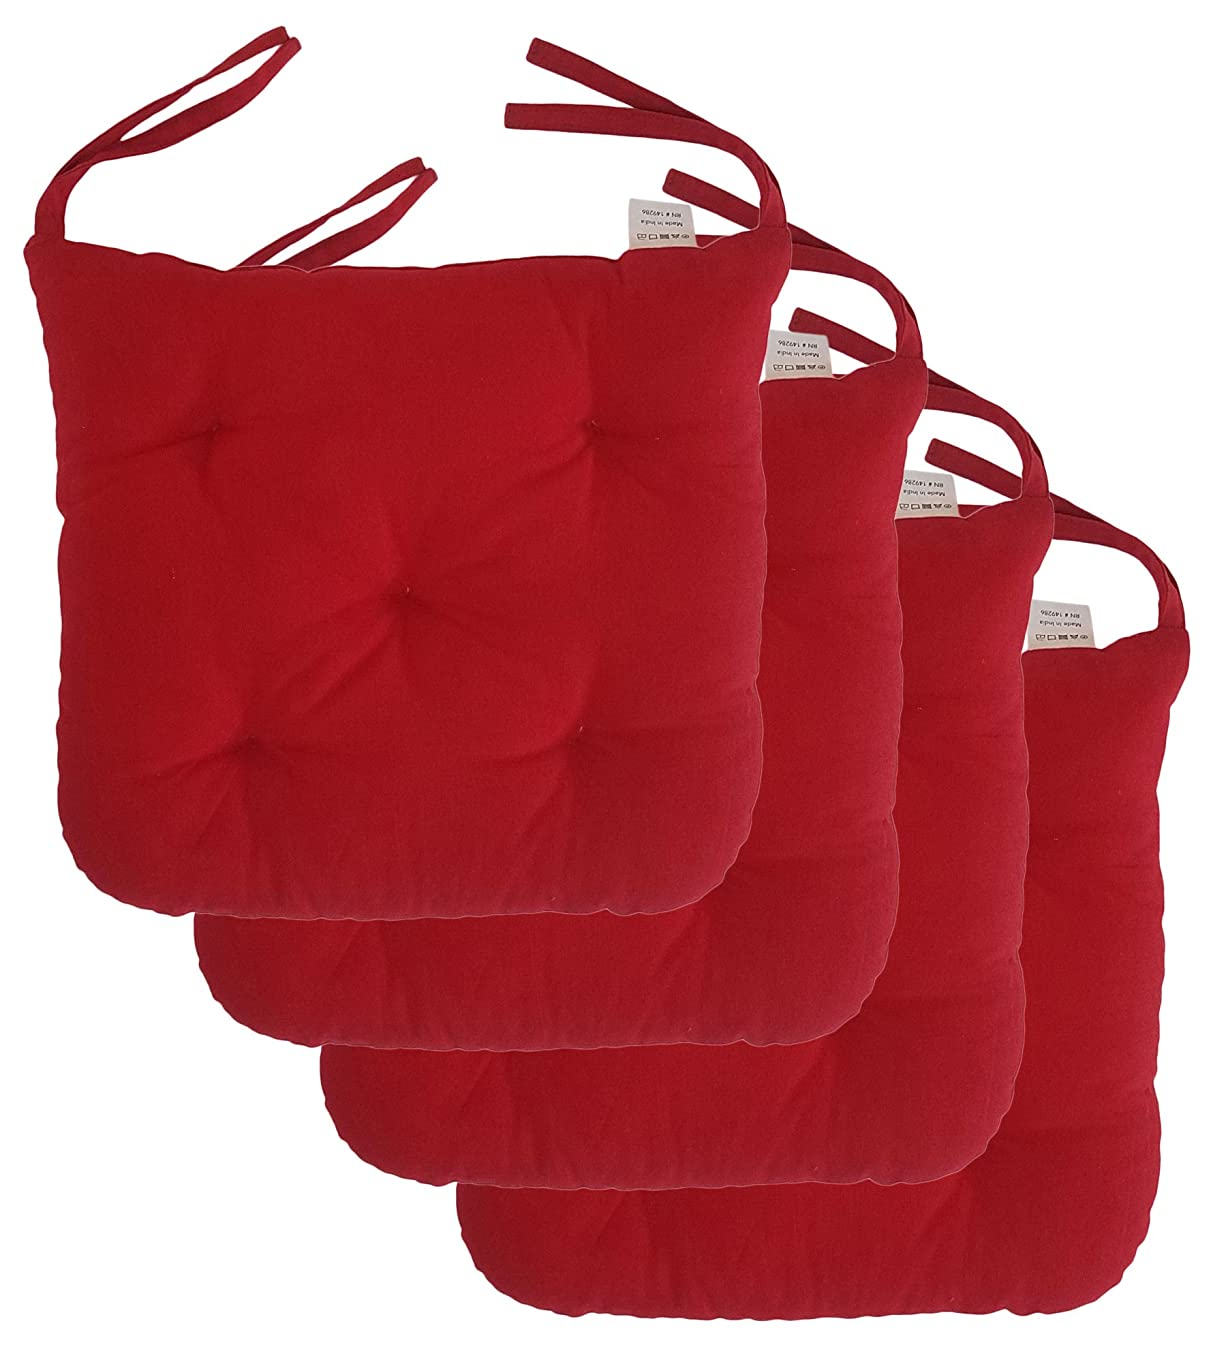 "Cottone 100% Cotton Chair Pads w/Ties (Set of 4)| 16"" x 15"" Square Round 